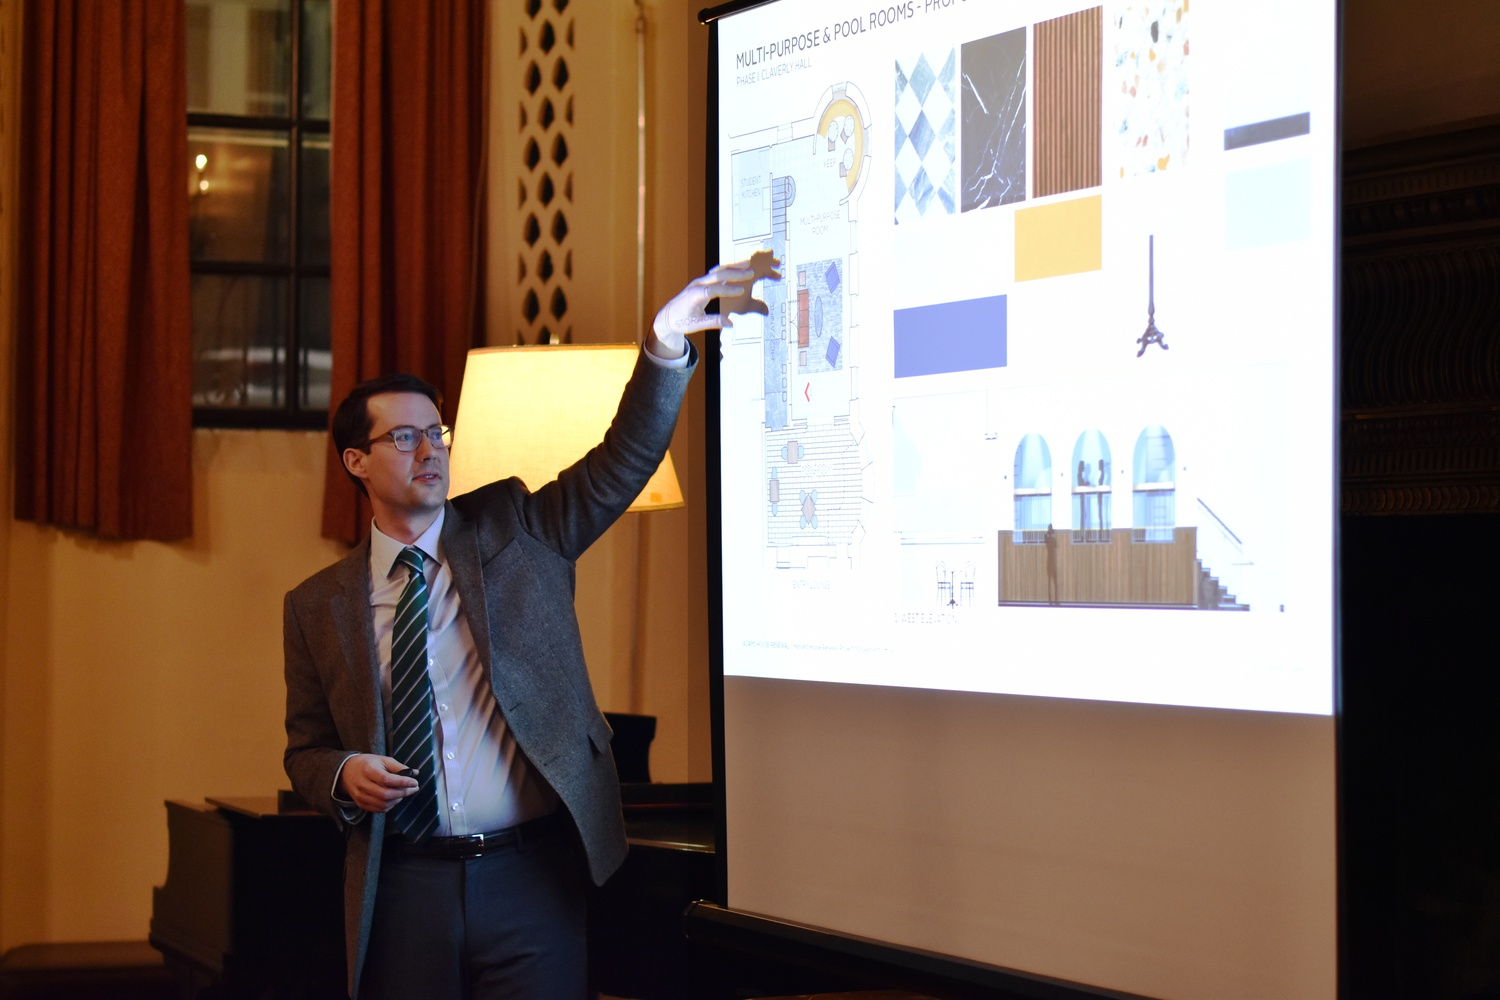 Plans for Adams House renewal and its timeline were shared with students and other residents Tuesday evening.